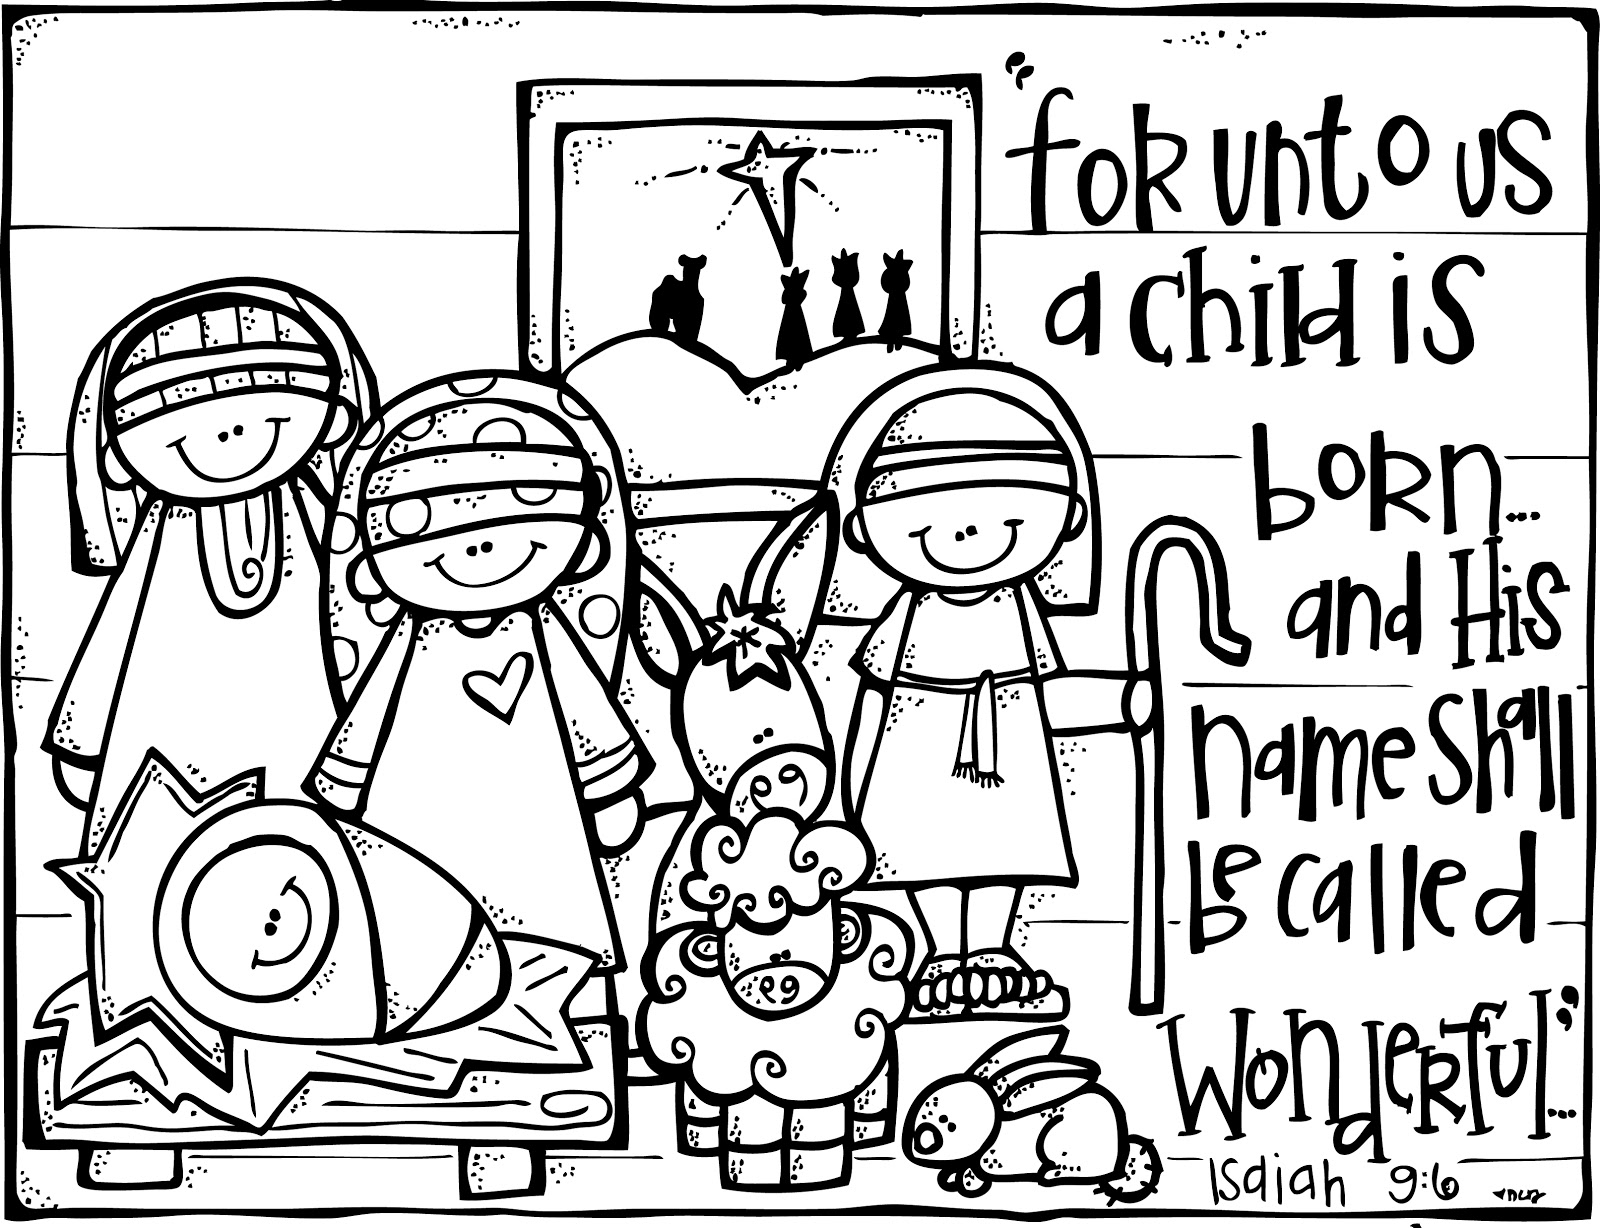 Nativity black and white large print black and white religious.